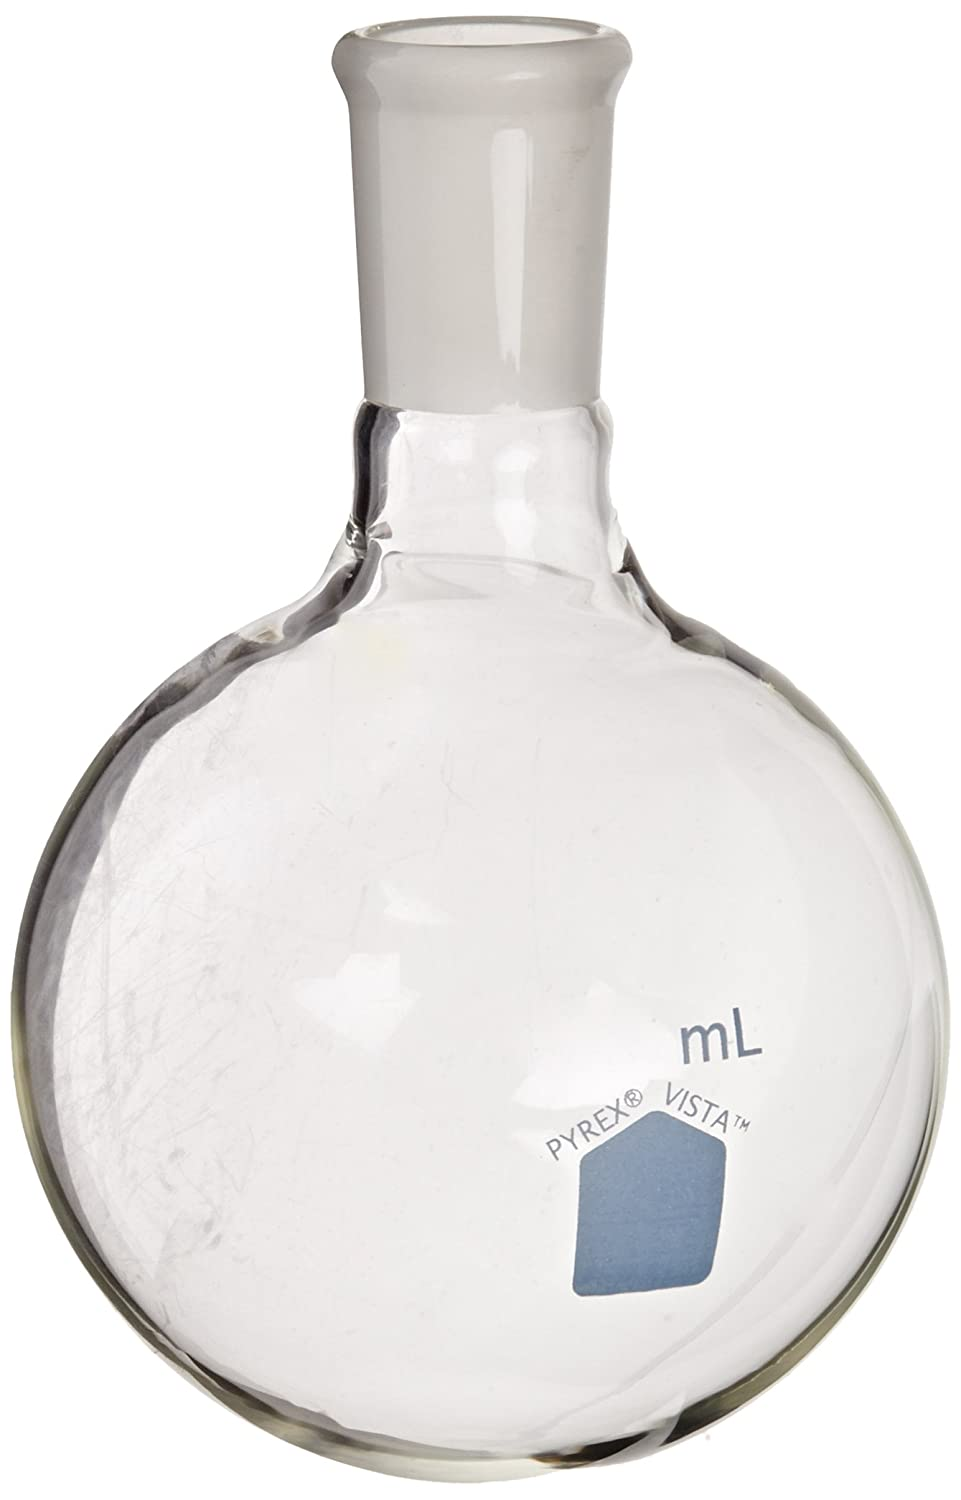 Corning Pyrex Vista Borosilicate Glass Short Neck Round Bottom Boiling Flasks with 24//40 Standard Taper Joint Case of 4 500ml Capacity